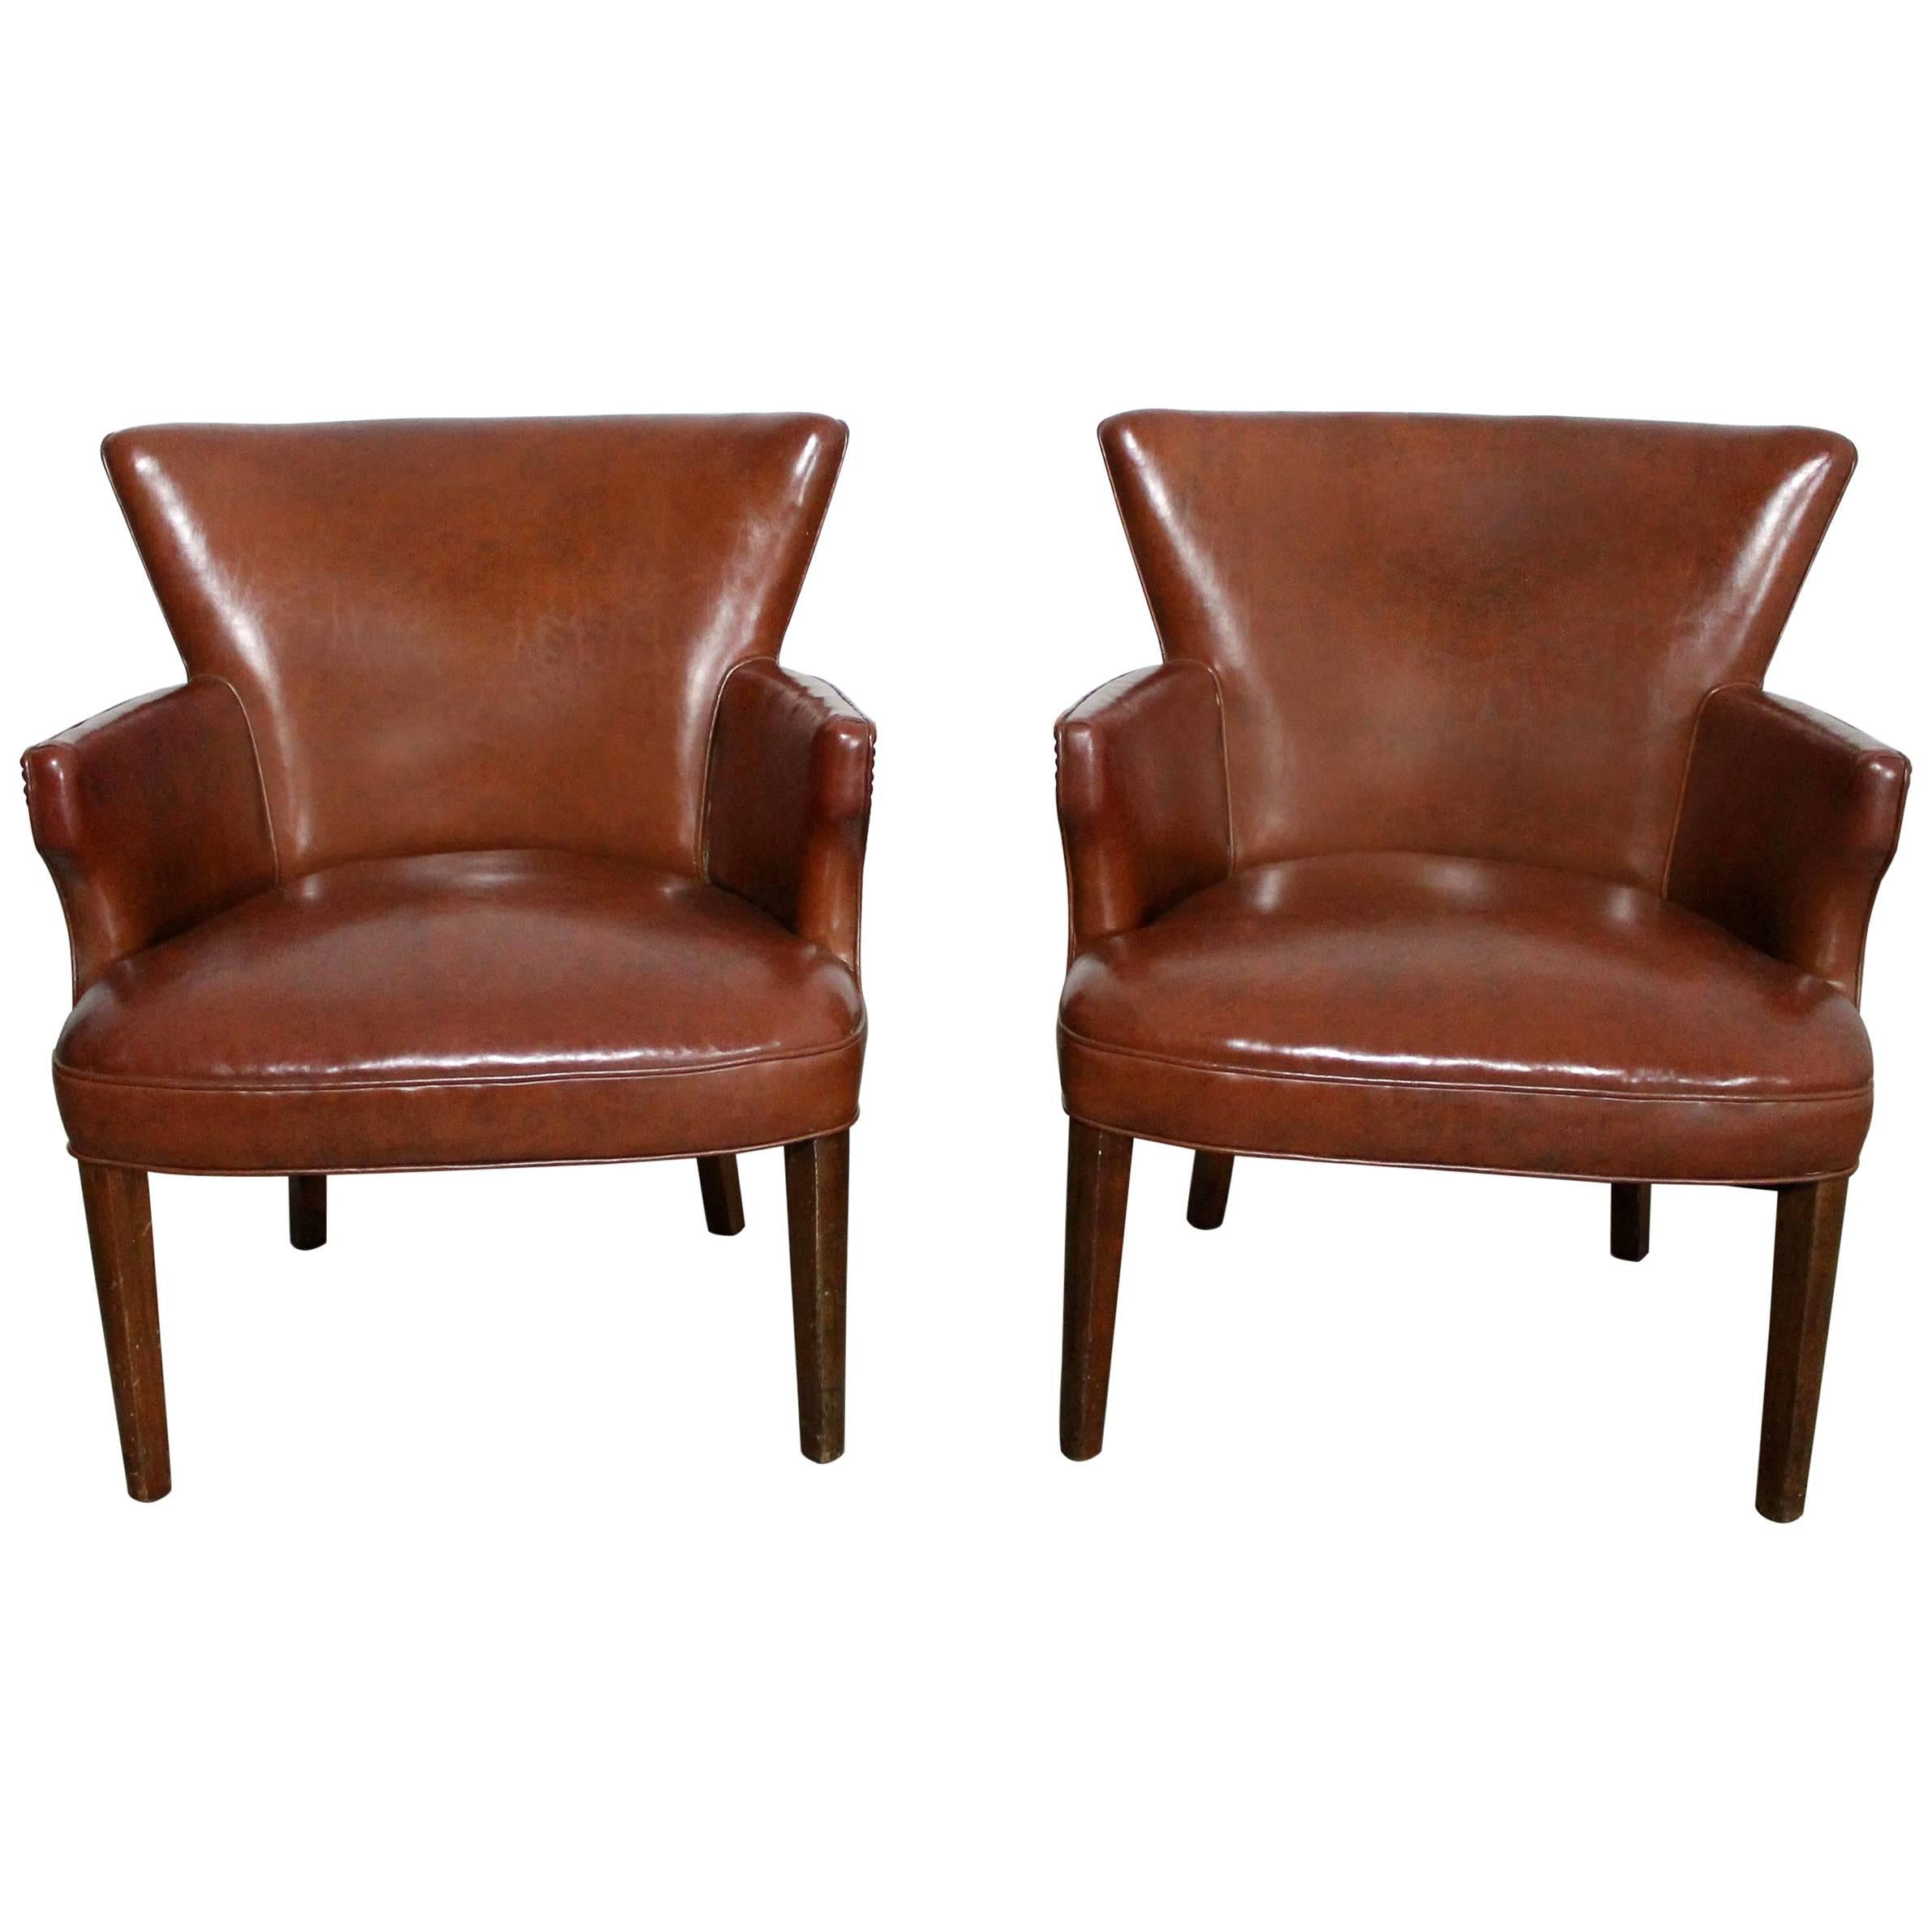 Art Deco Pair Of Petite Brown Faux Leather Armchairs With Nail Head Accent 1